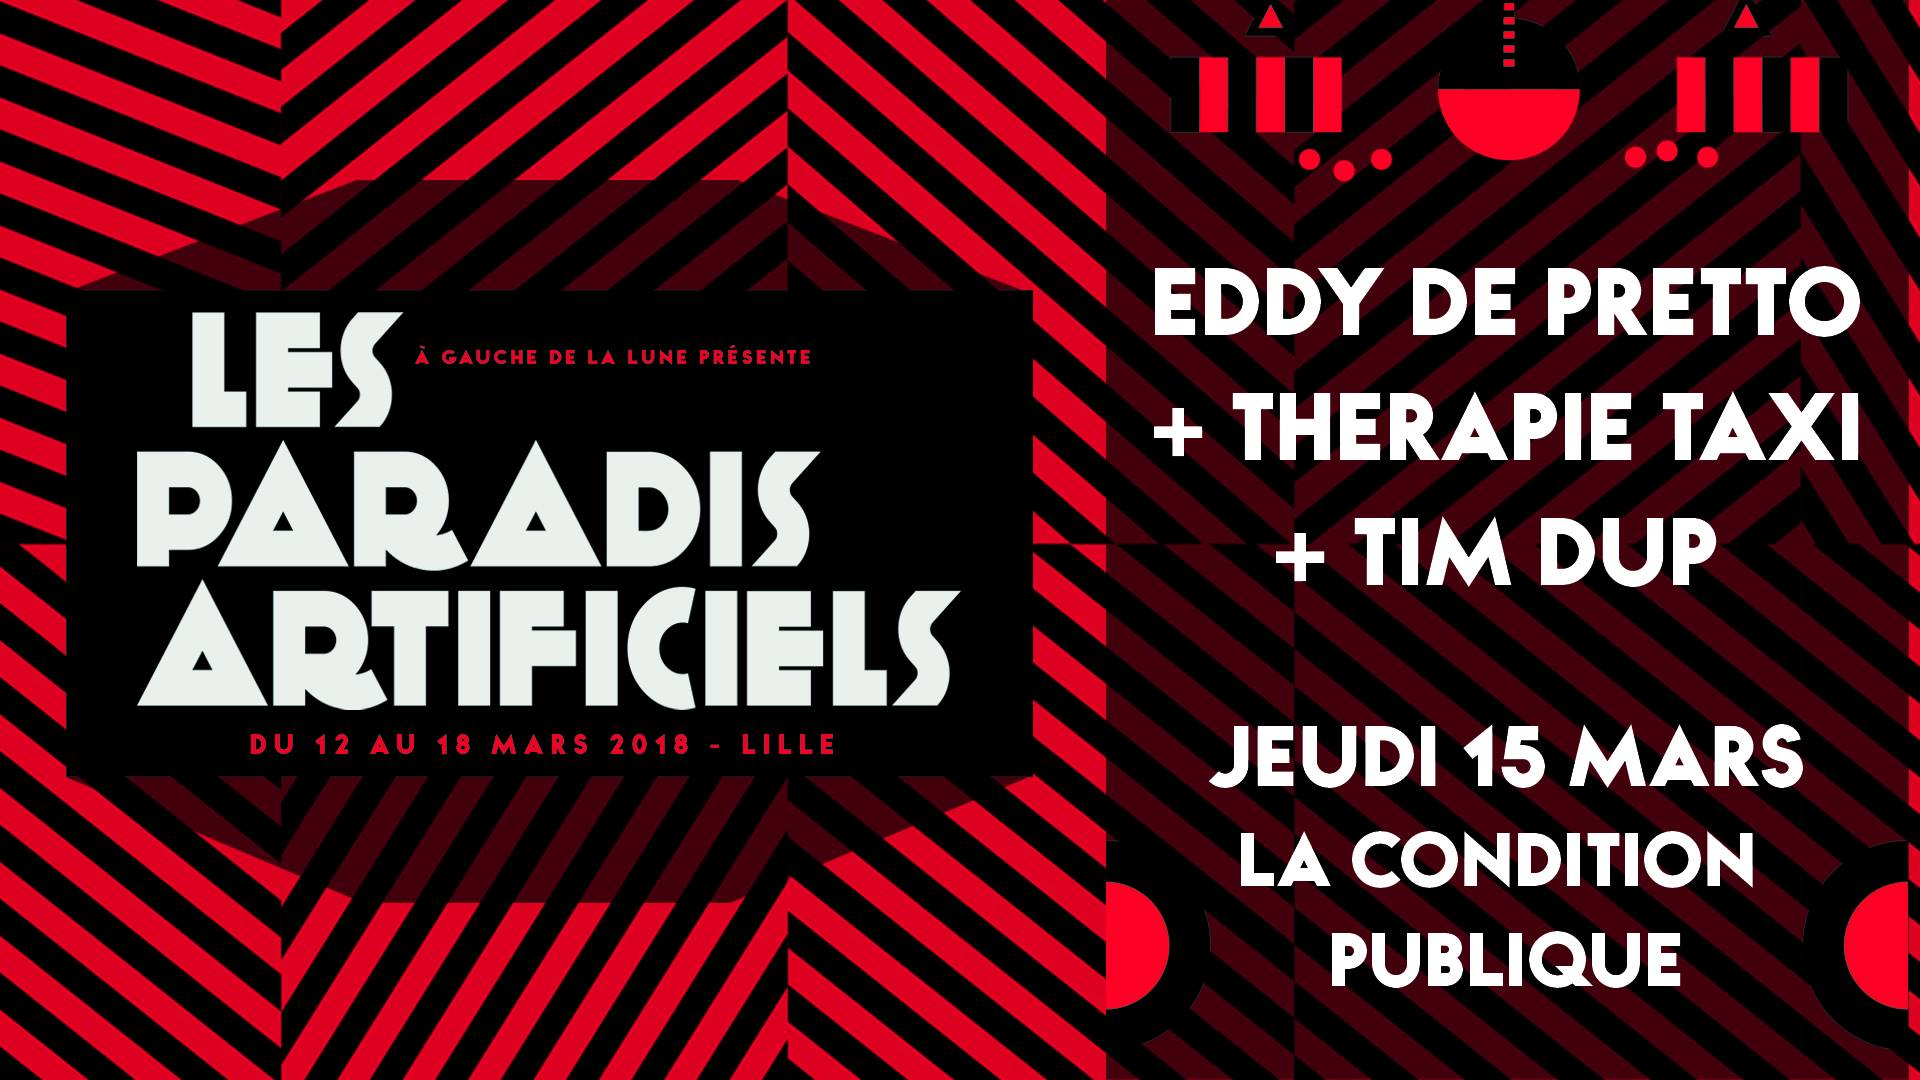 Paradis Artificiels 2018 : Eddy De Pretto + Therapie Taxi + Tim Dup